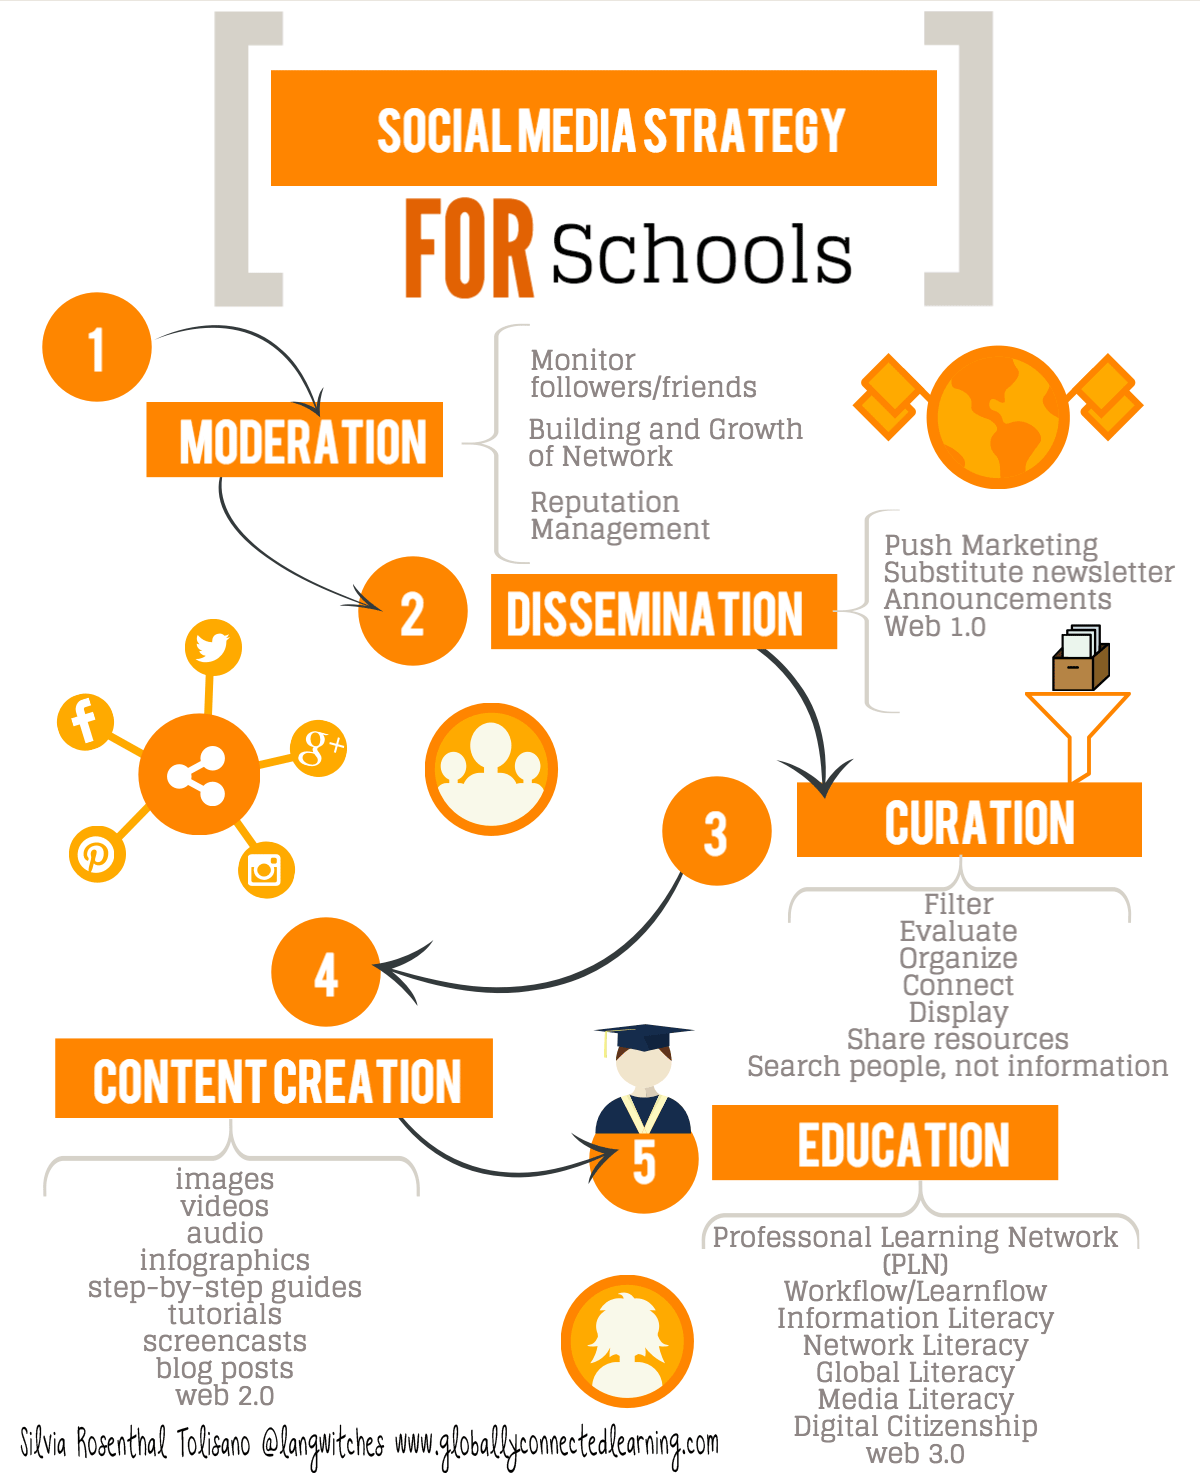 Social Media FOR Schools: Strategy